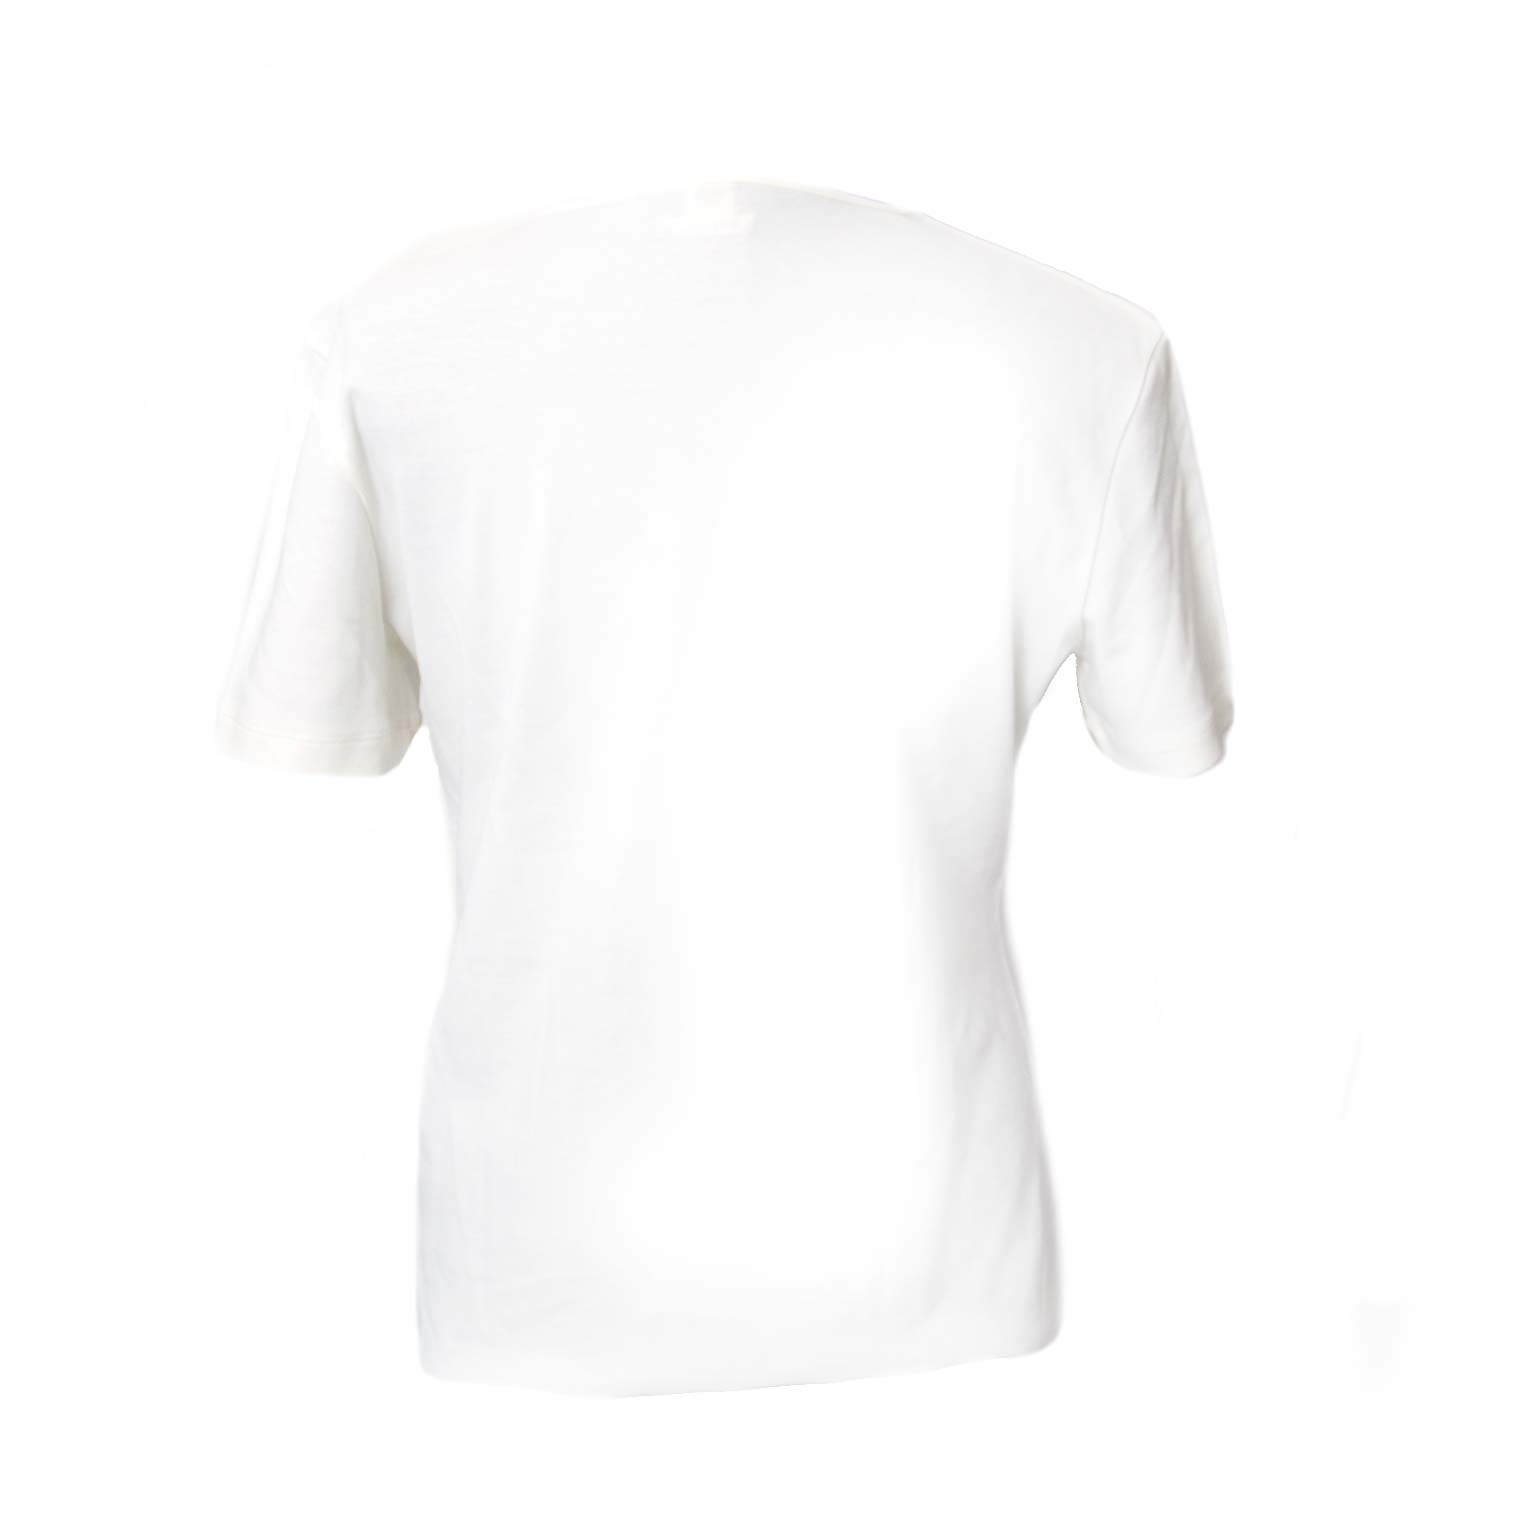 shop safe online your secondhand vHermes White Tshirt